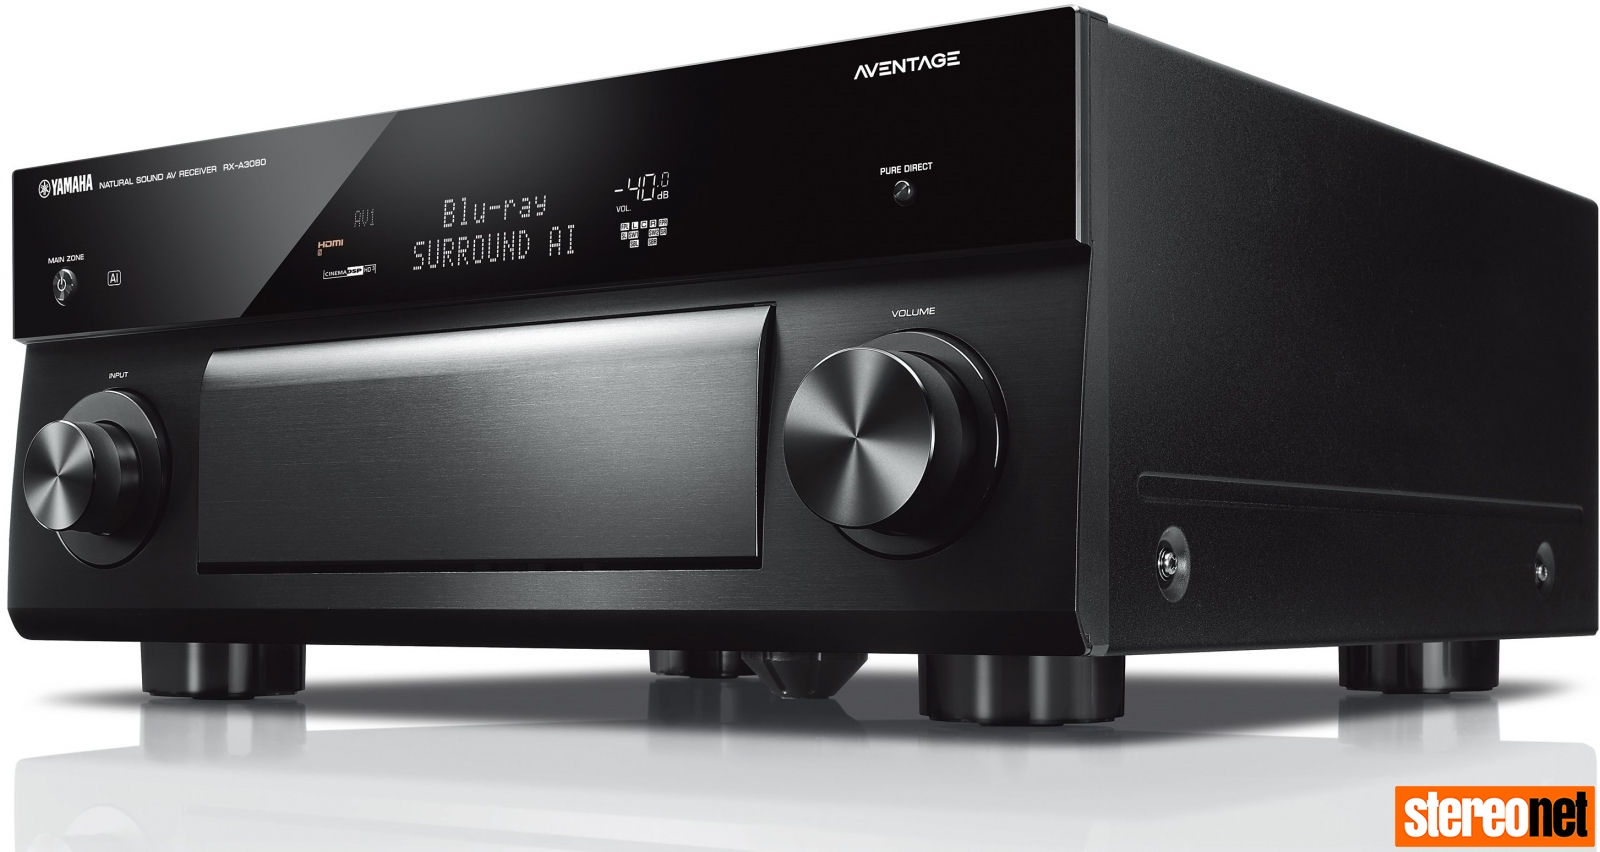 Yamaha Aventage RX-A3080 9 2 Channel AV Receiver Review